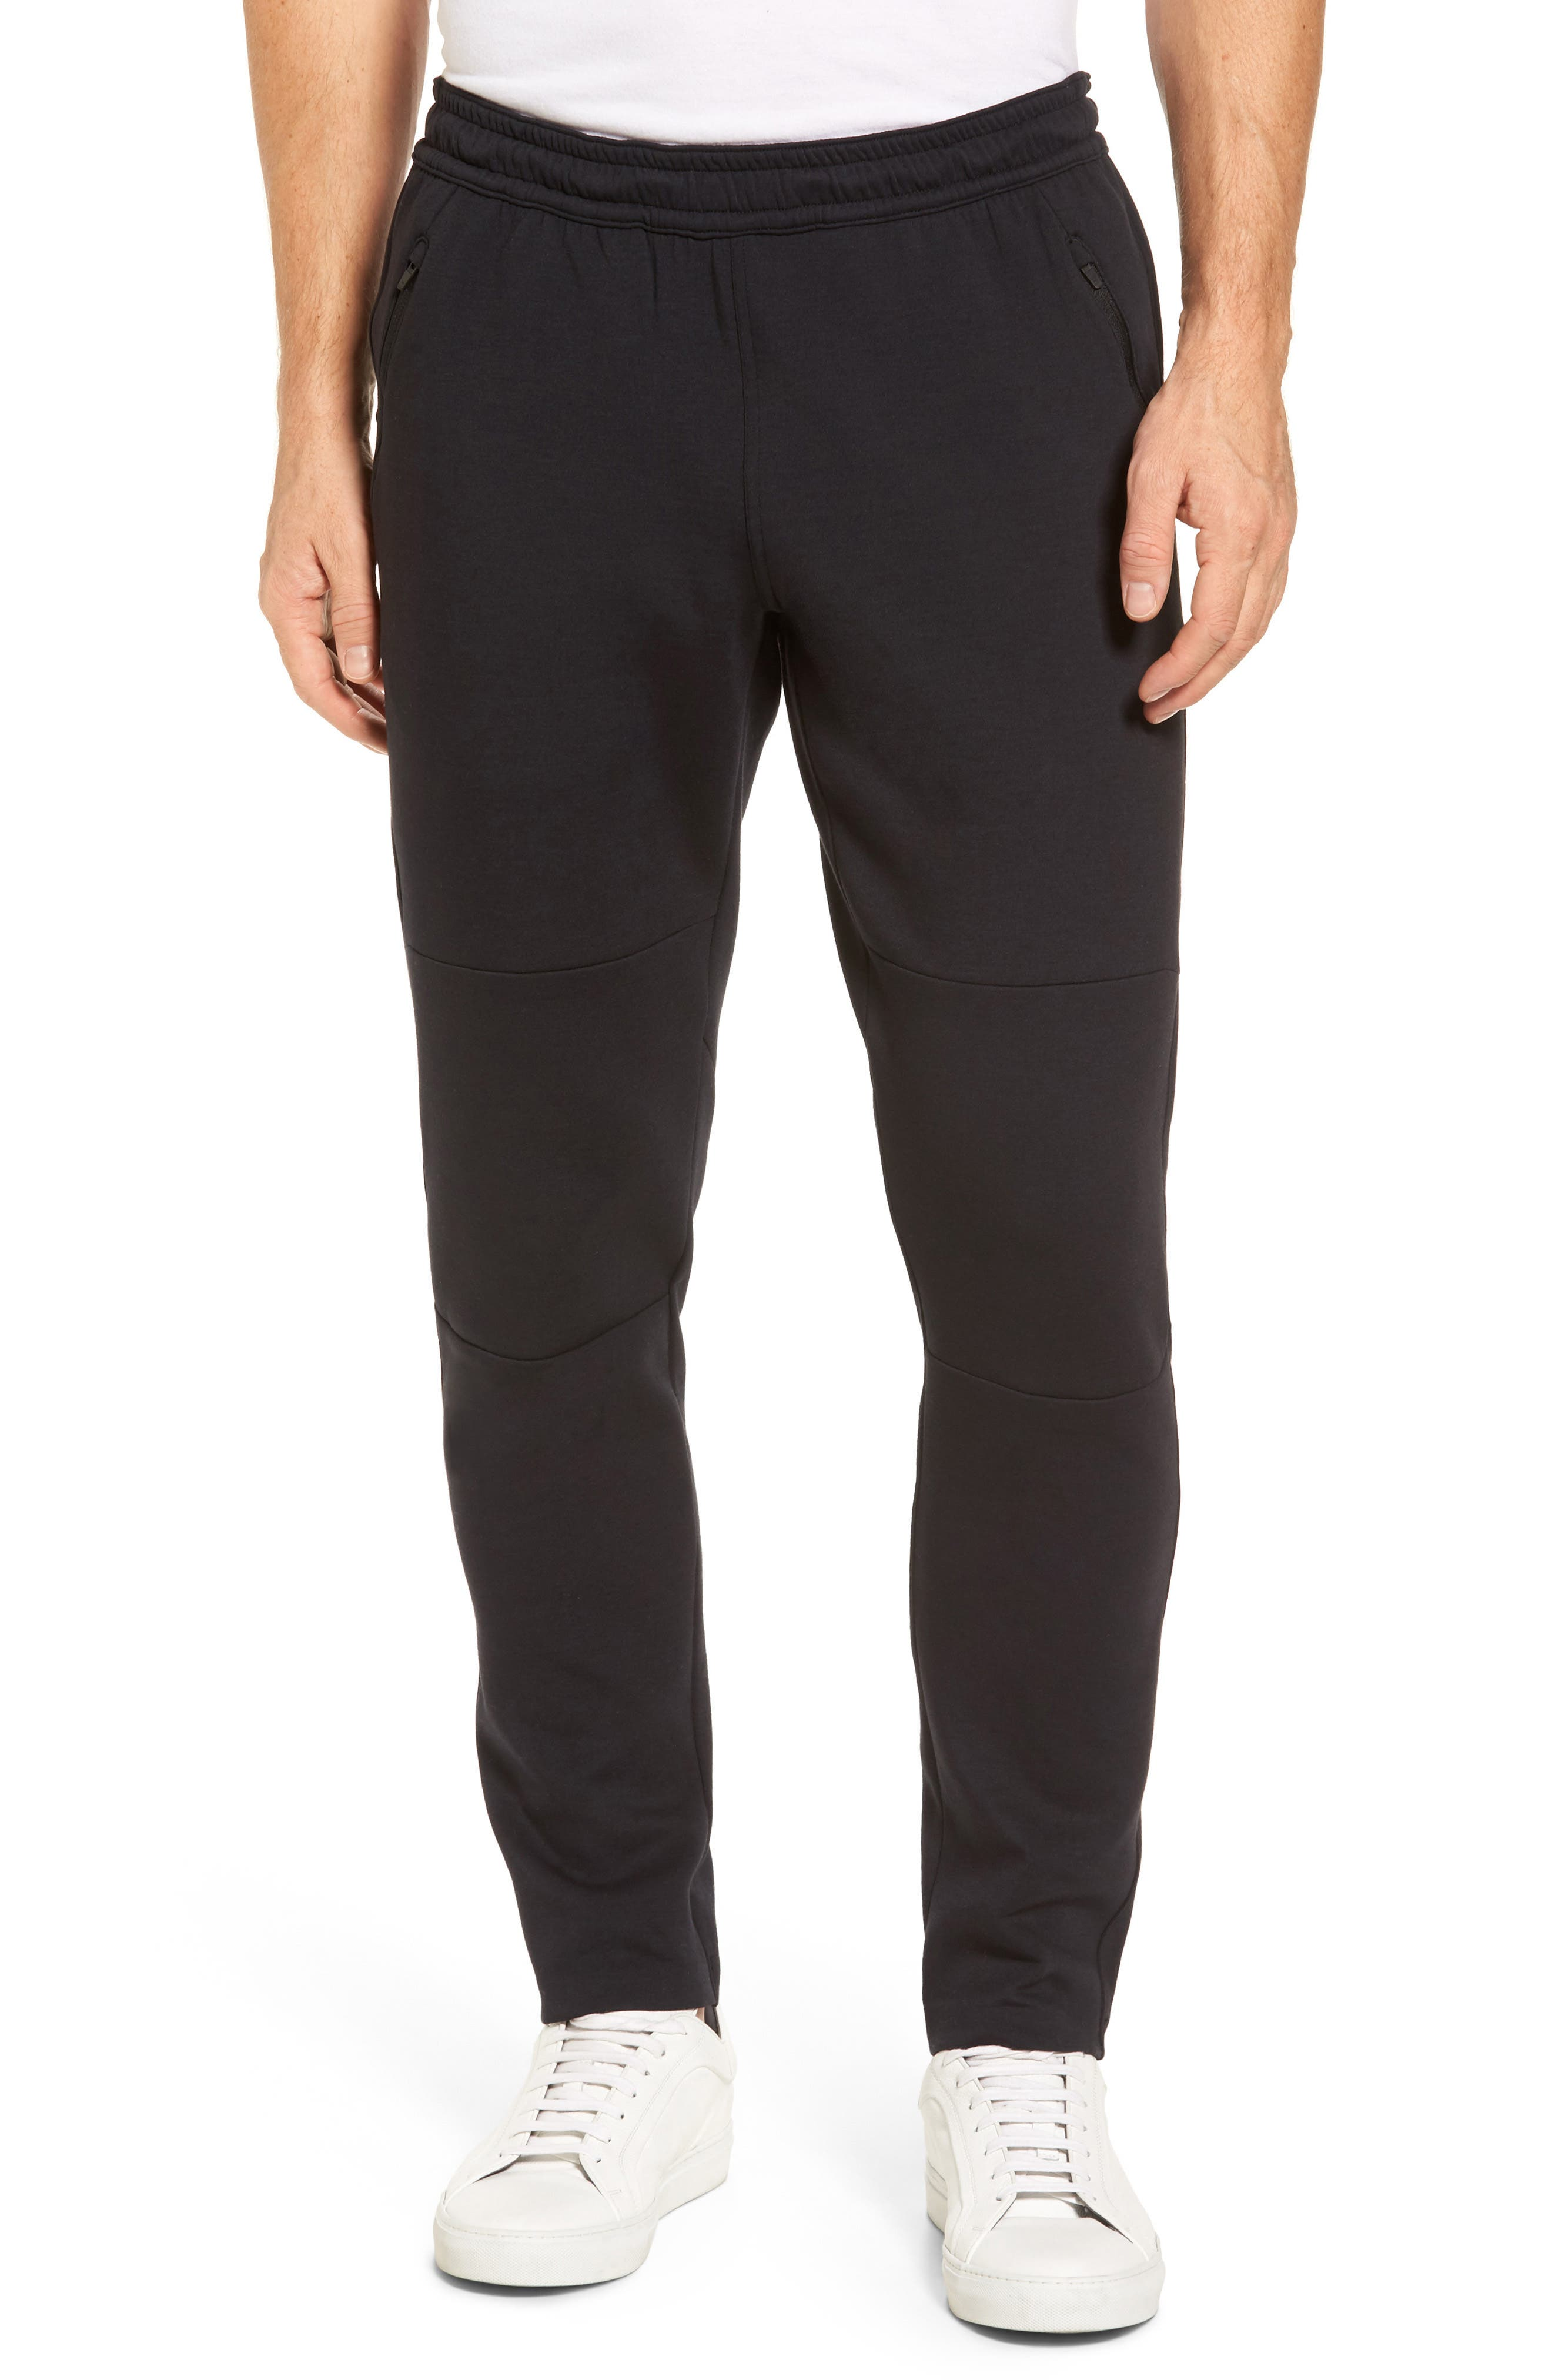 Alternate Image 1 Selected - Zella Tech Interlock Knit Pant